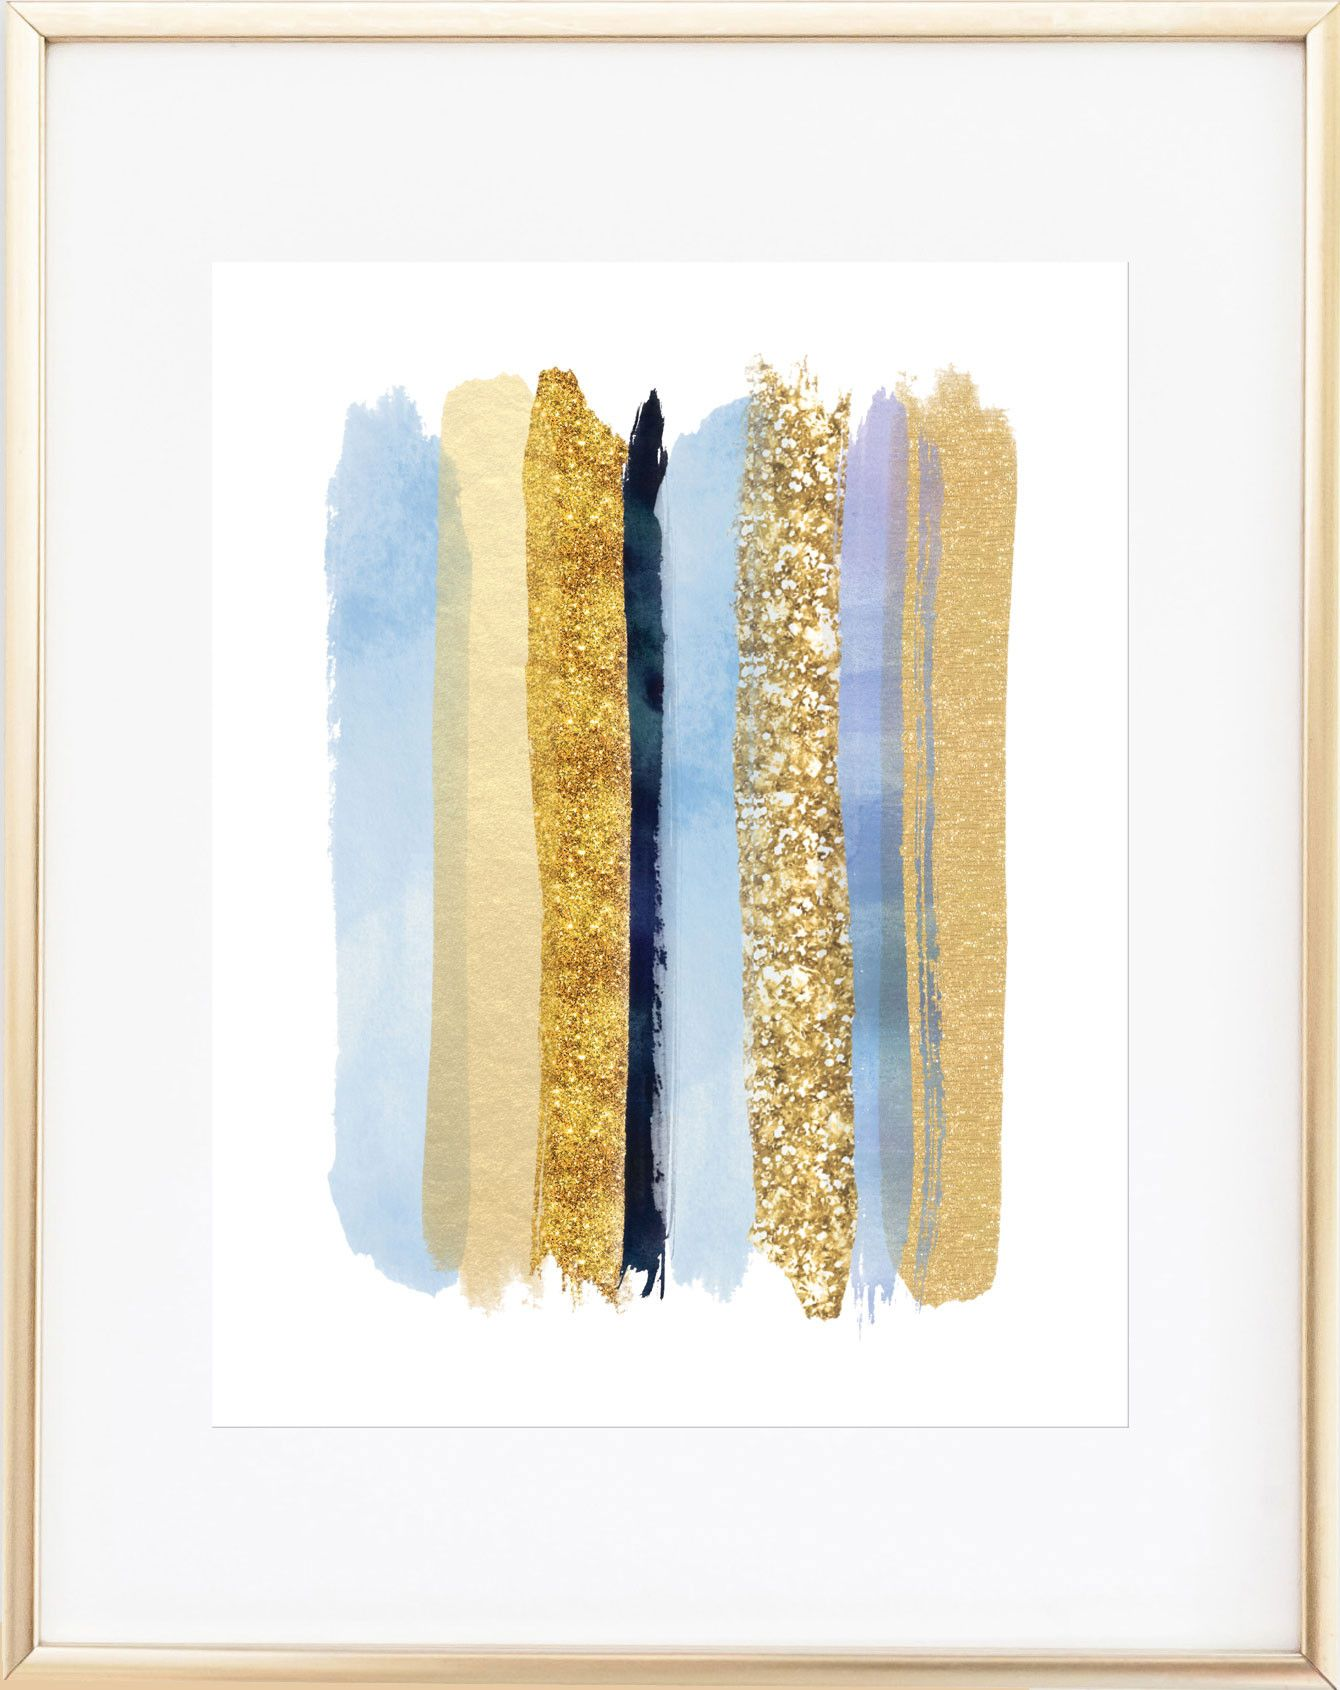 Glamorous Blue and Gold Wall Art | Gold walls, Free iphone and Walls